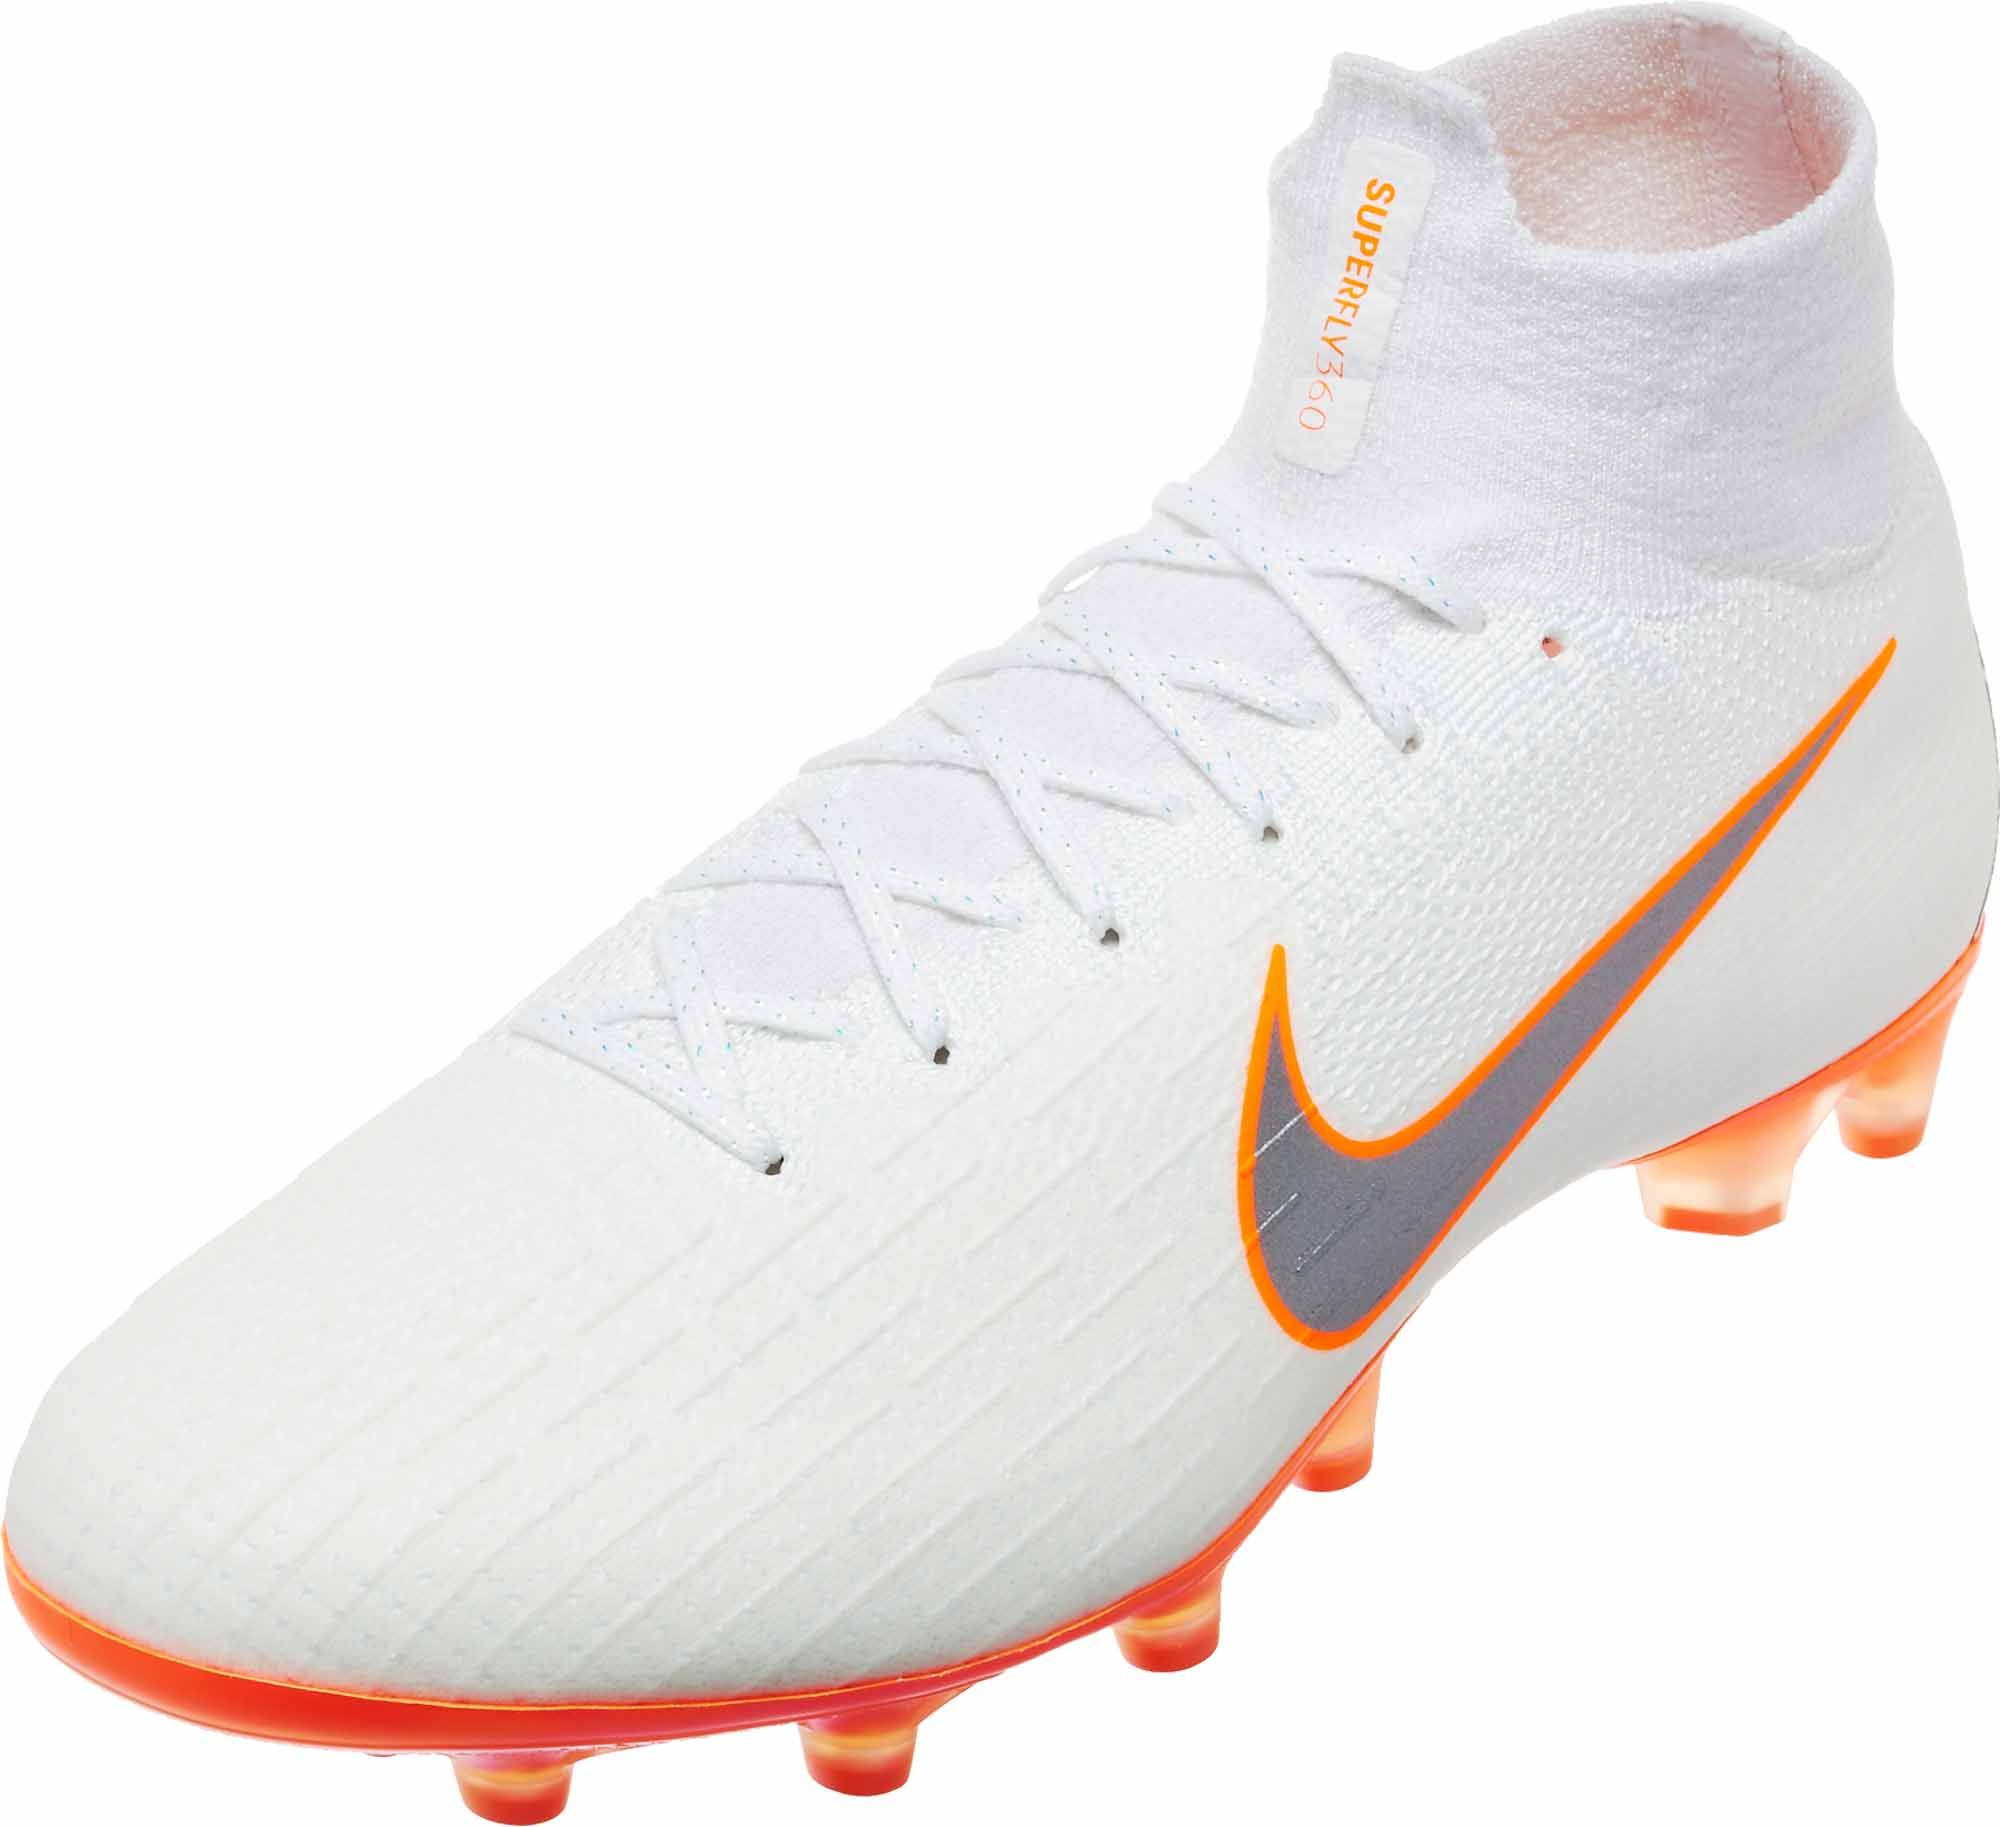 Just Do It World Cup Pack Nike Mercurial Superfly Elite 6 Pro Ag Soccer Cleats Buy Them From Www Soccerpro Com Chuteira Futsal Chuteiras Nike Chuteiras